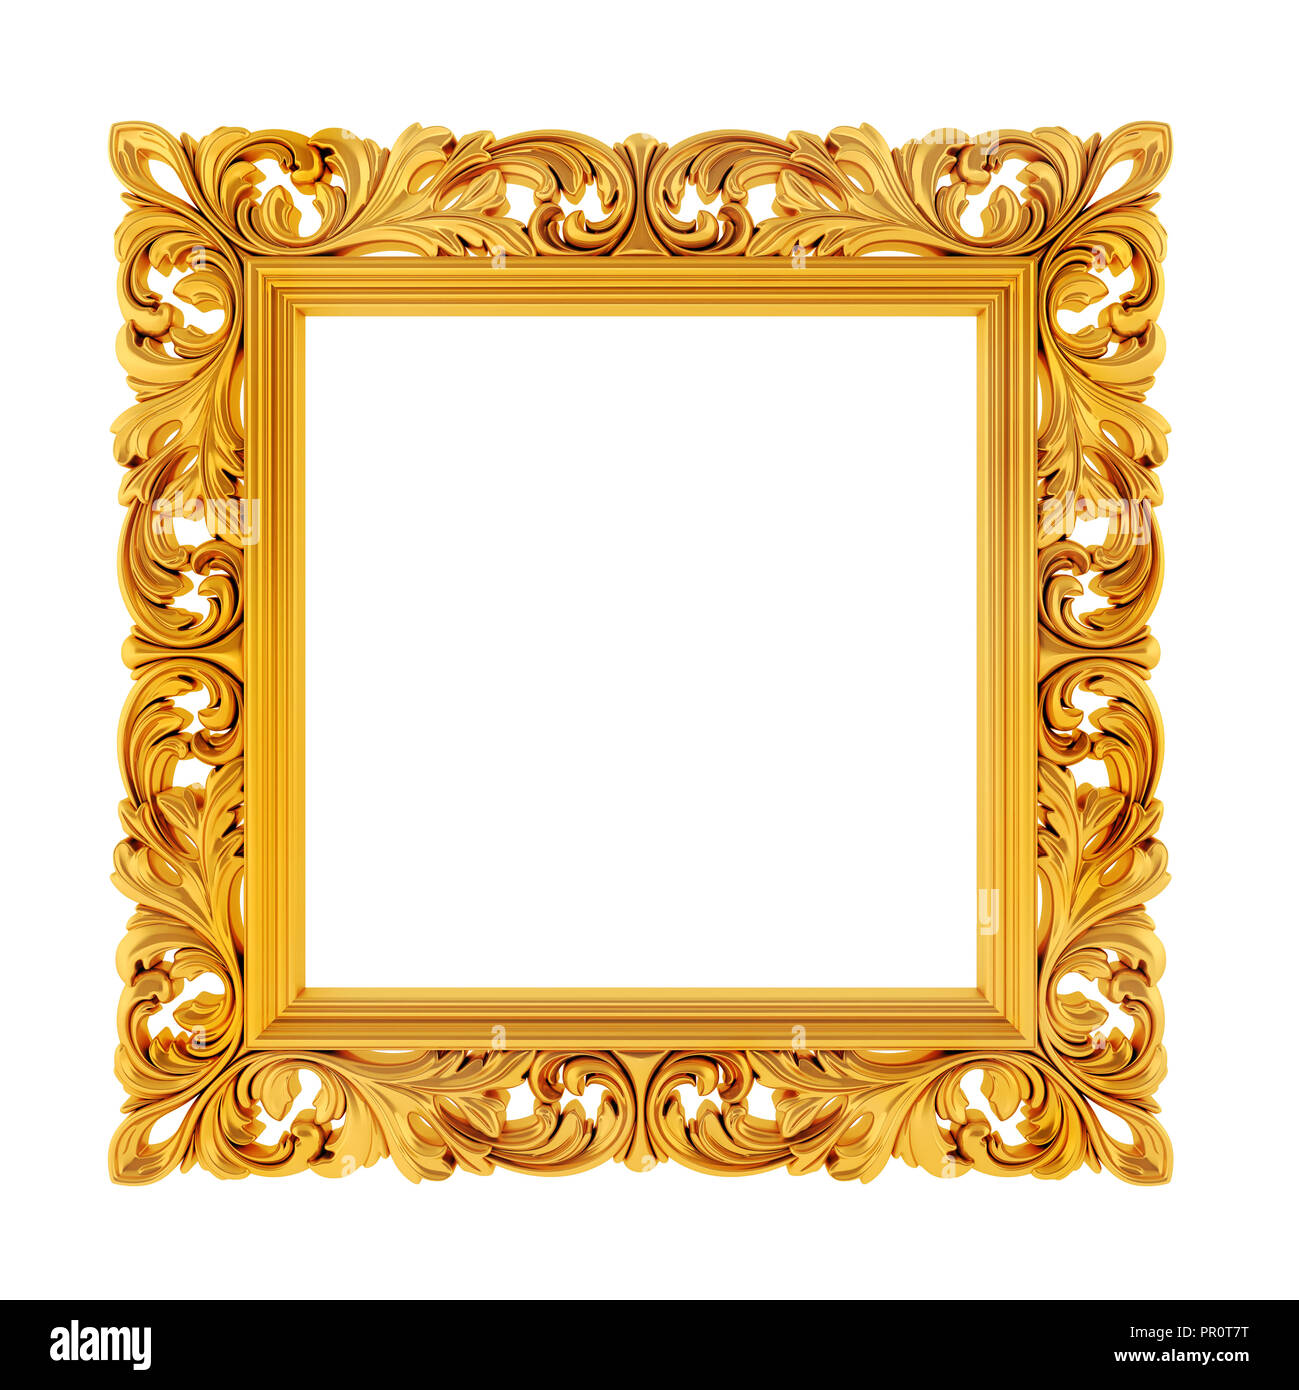 3d gold frame on white background Stock Photo: 220680540 - Alamy